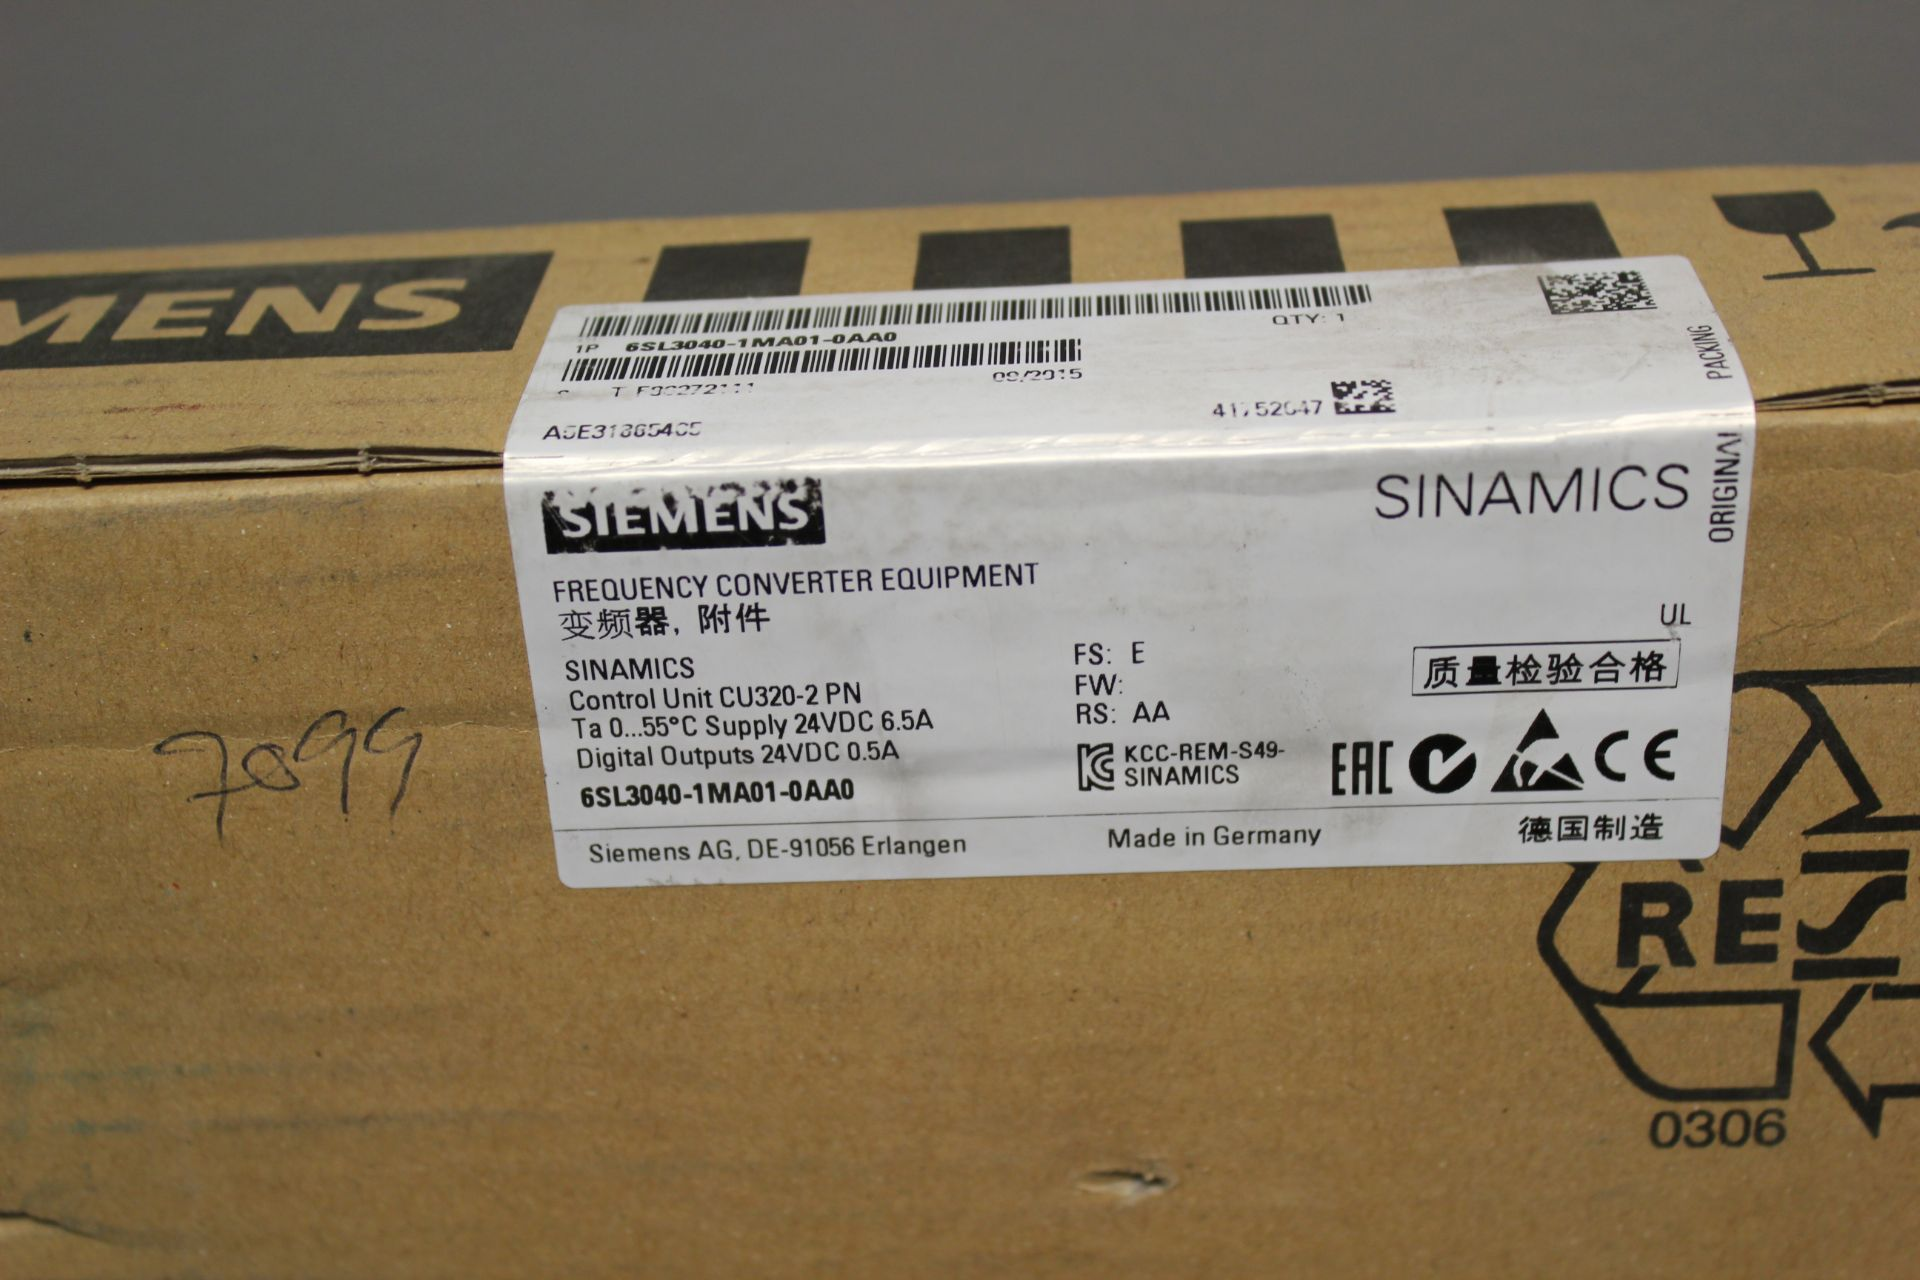 NEW SIEMENS SINAMICS FREQUENCY CONVERTER CONTROL UNIT - Image 3 of 5